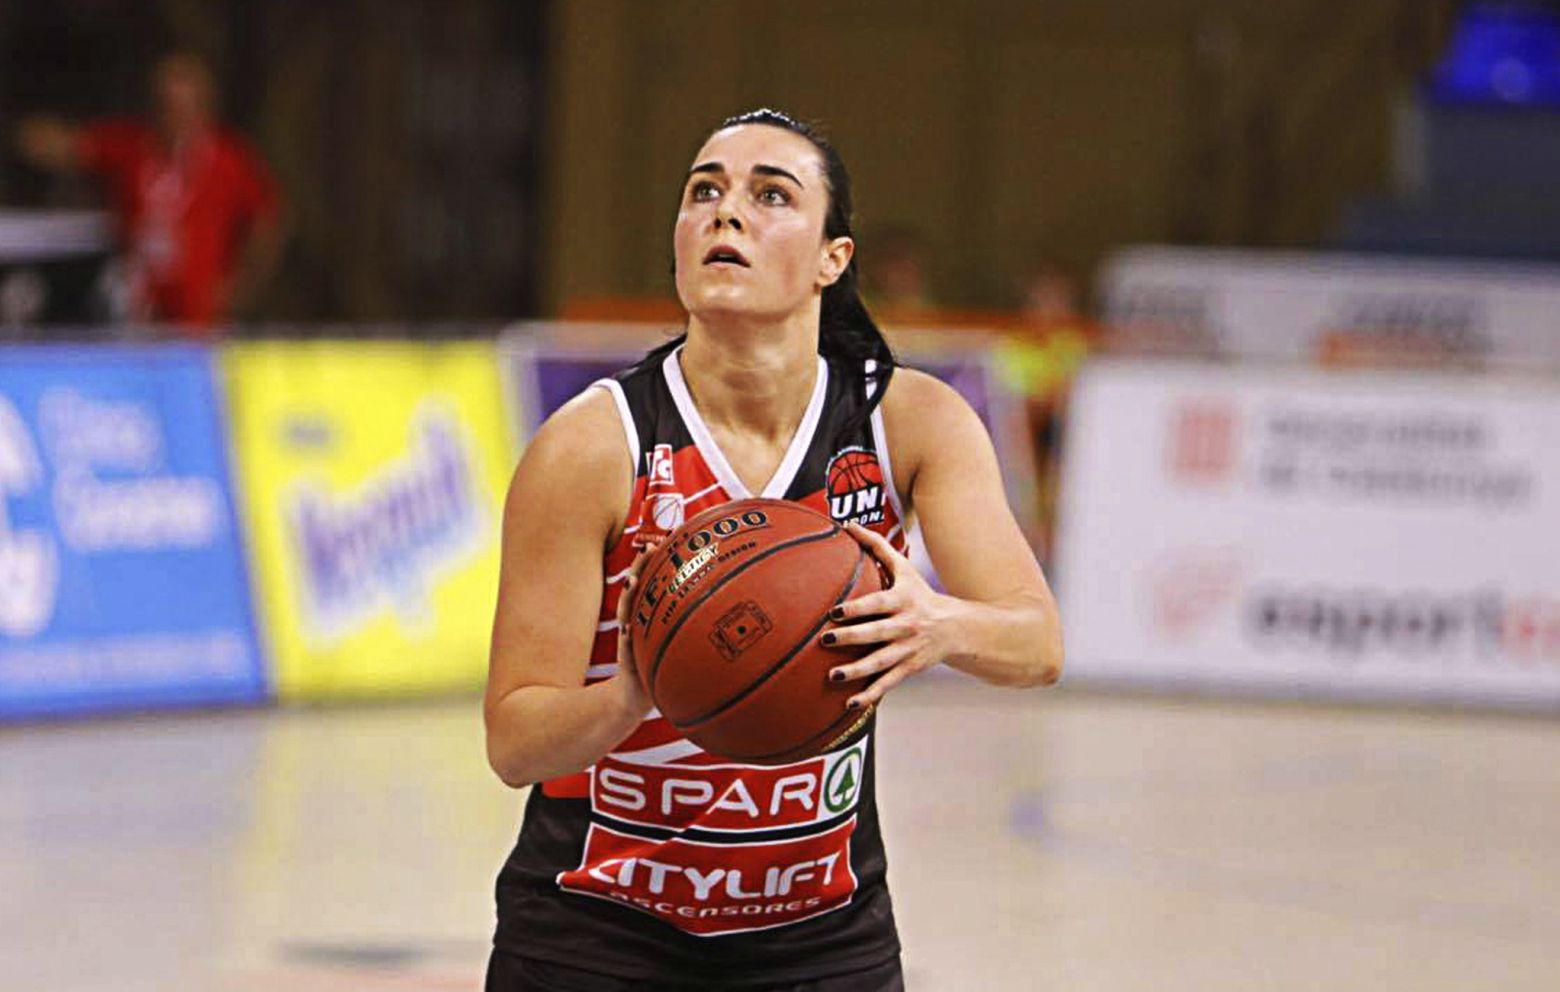 NICOLE ROMEO has signed in Turkey with Canik